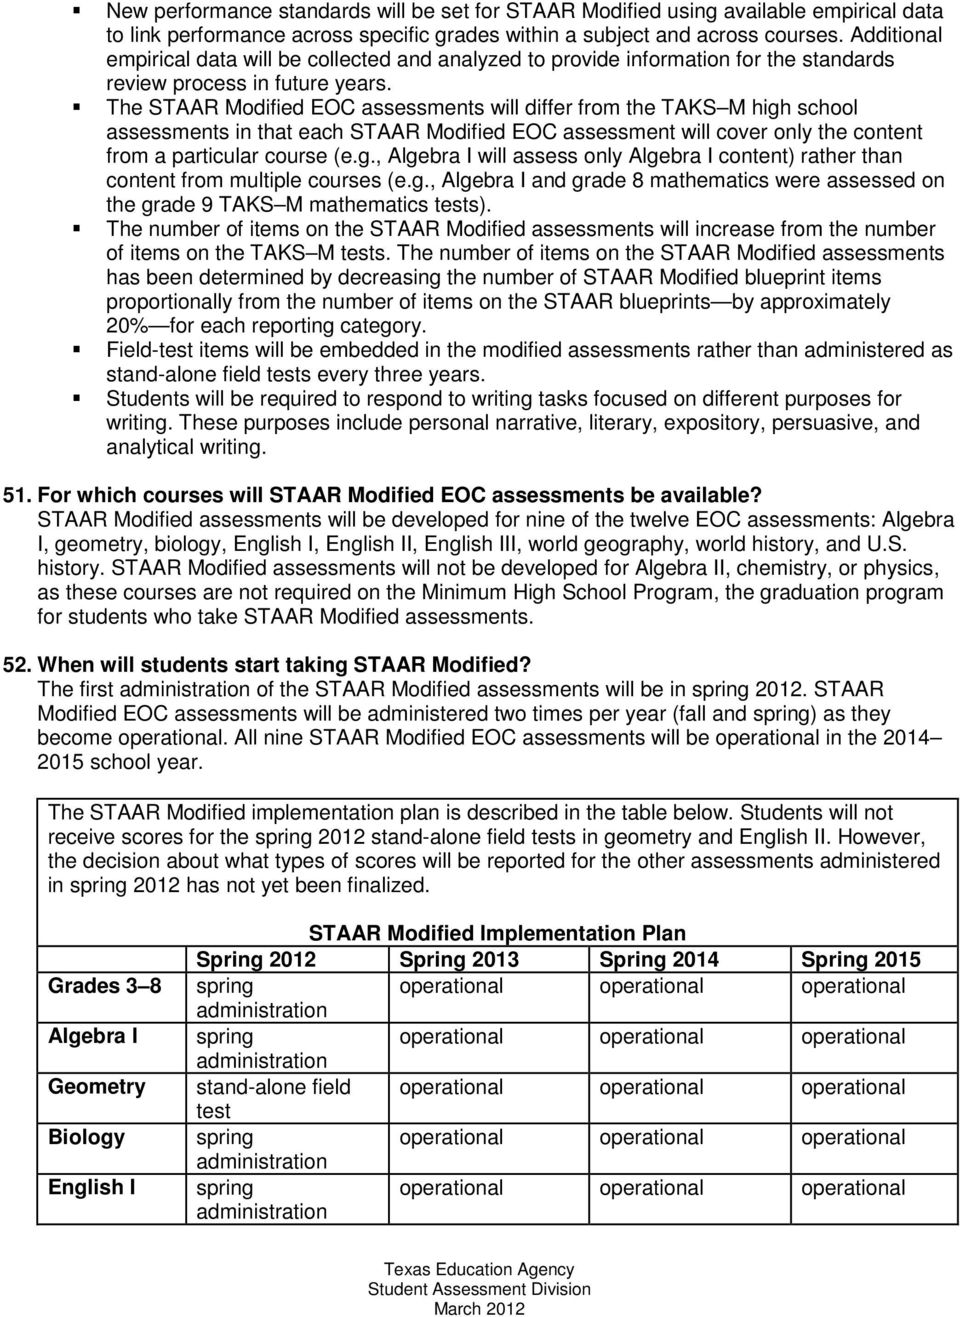 The STAAR Modified EOC assessments will differ from the TAKS M high school assessments in that each STAAR Modified EOC assessment will cover only the content from a particular course (e.g., Algebra I will assess only Algebra I content) rather than content from multiple courses (e.